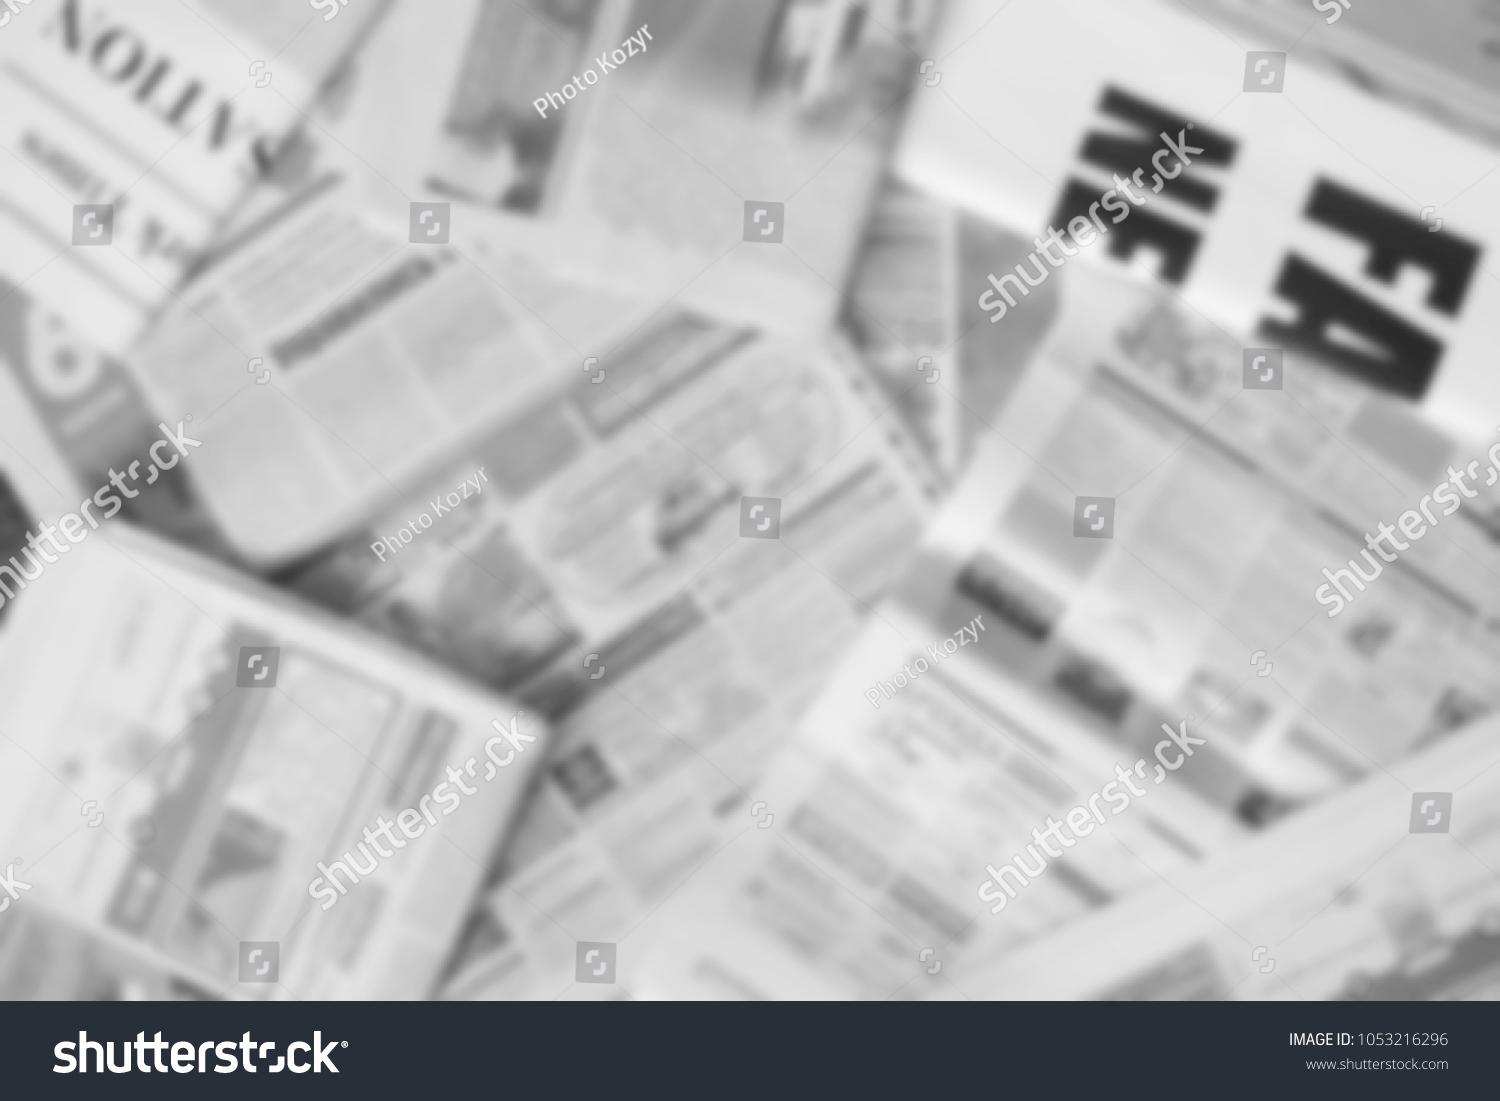 news concept newspapers scattered on horizontal stock photo (edit